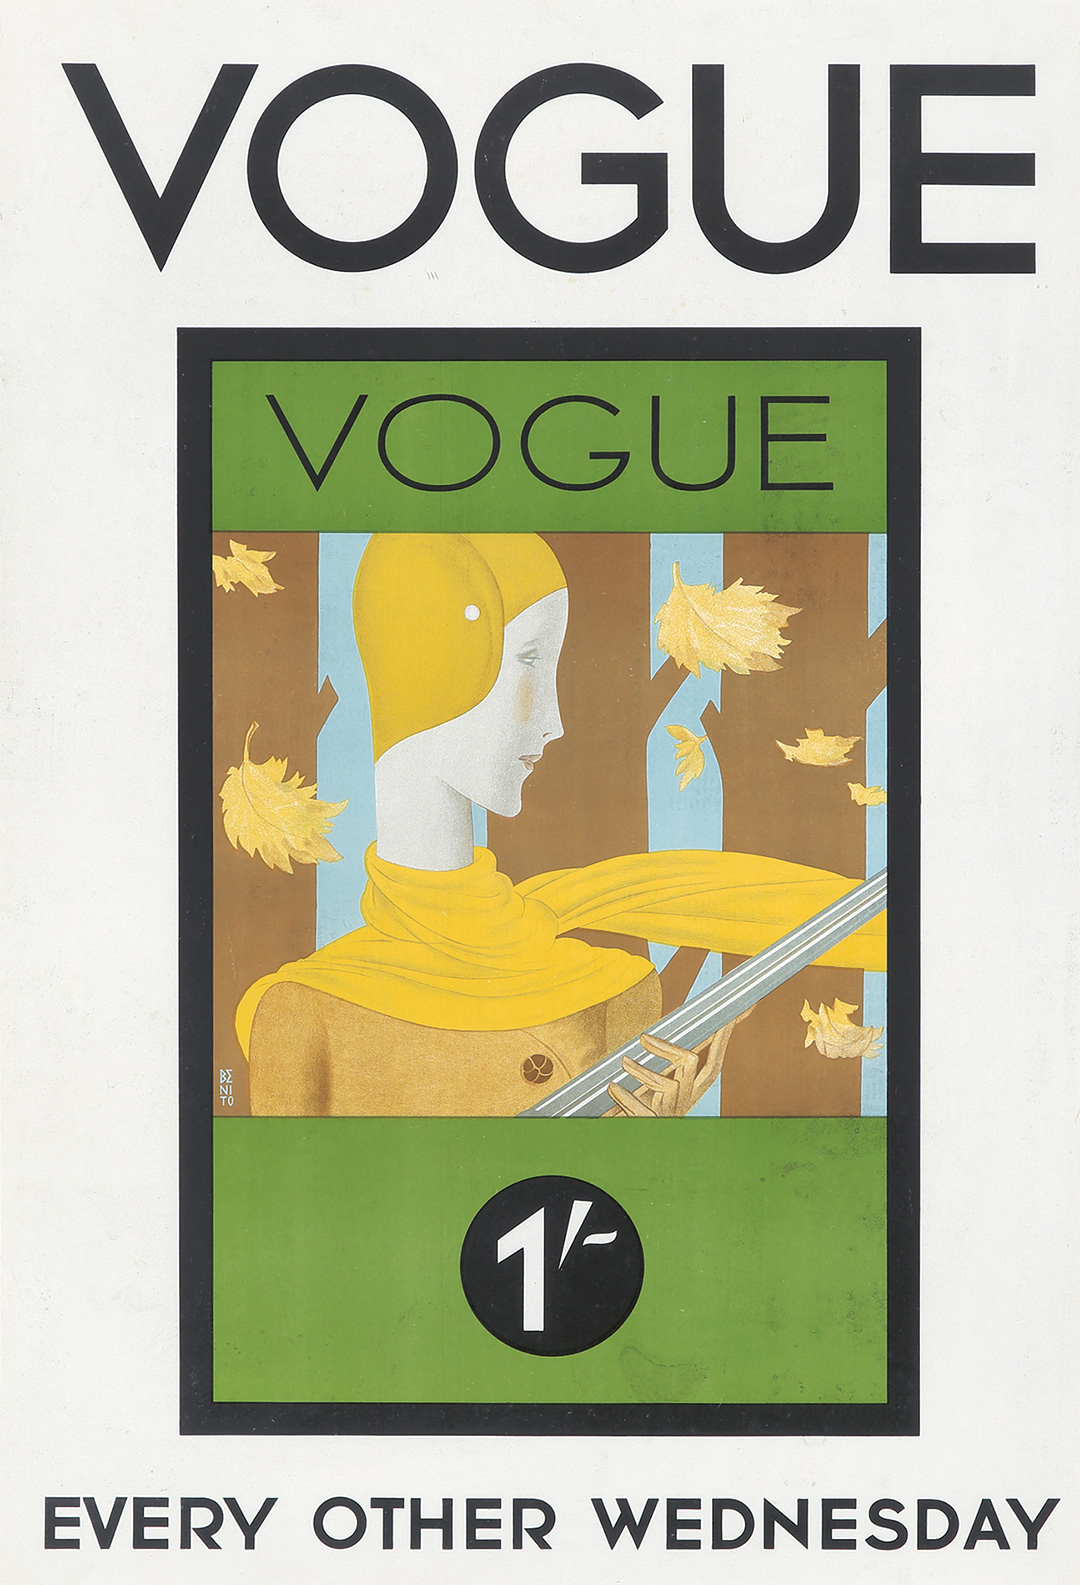 154B. Vogue / Every Other Wednesday.